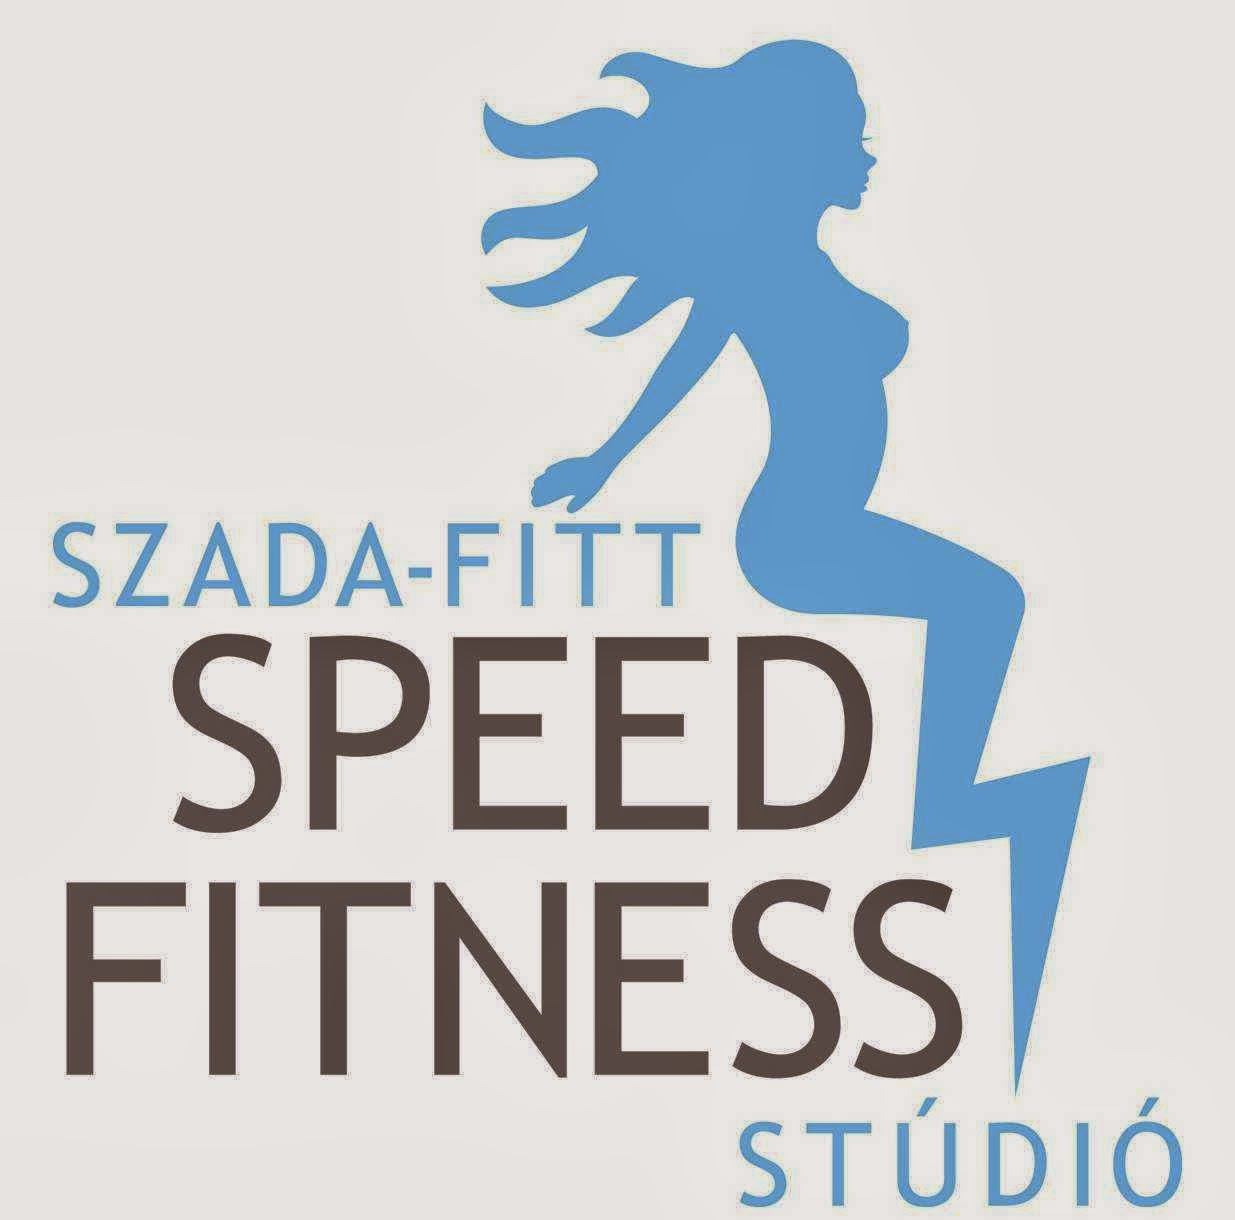 Szada-Fitt House of Lords SPEED FITNESS Studio - photo